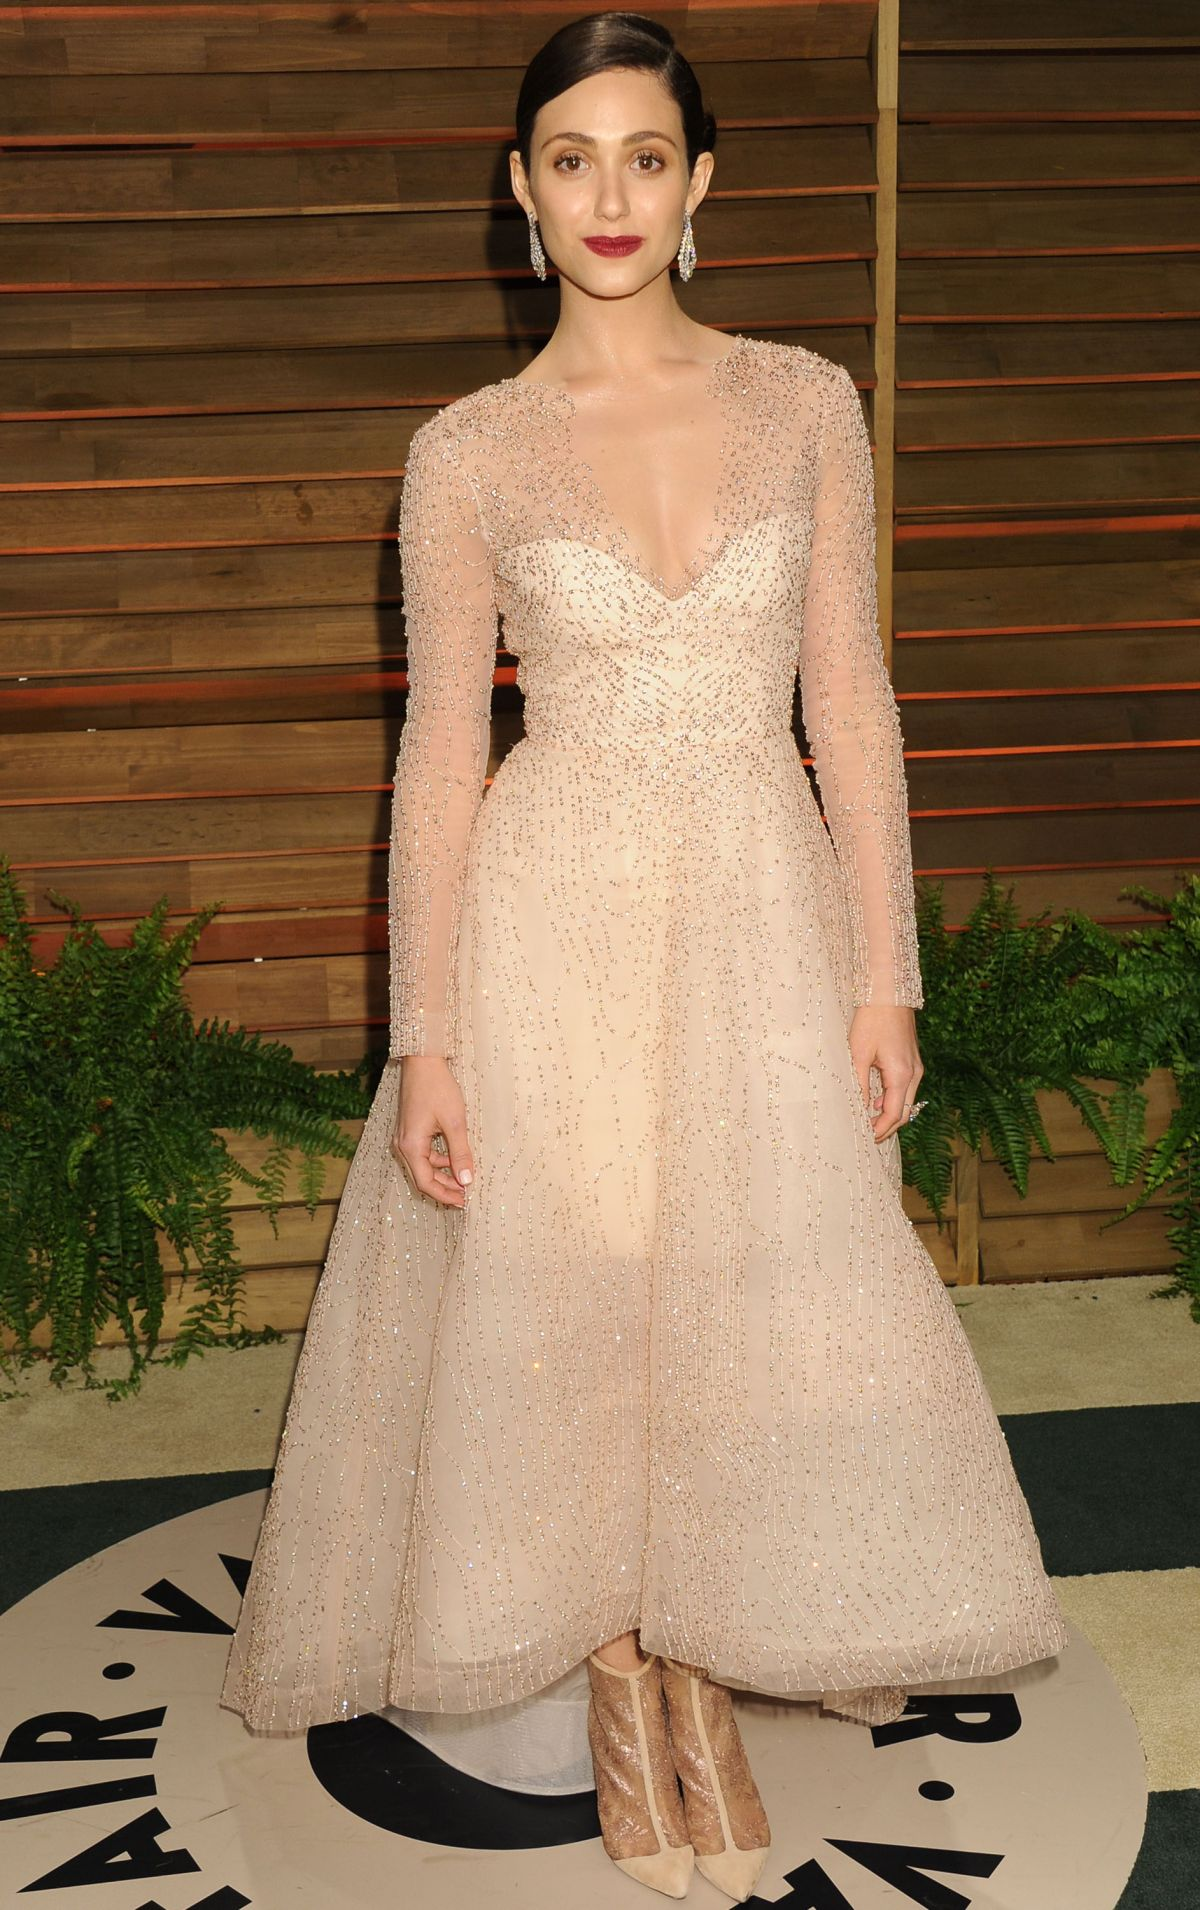 EMMY ROSSUM at Vanity Fair Oscar Party in Hollywood